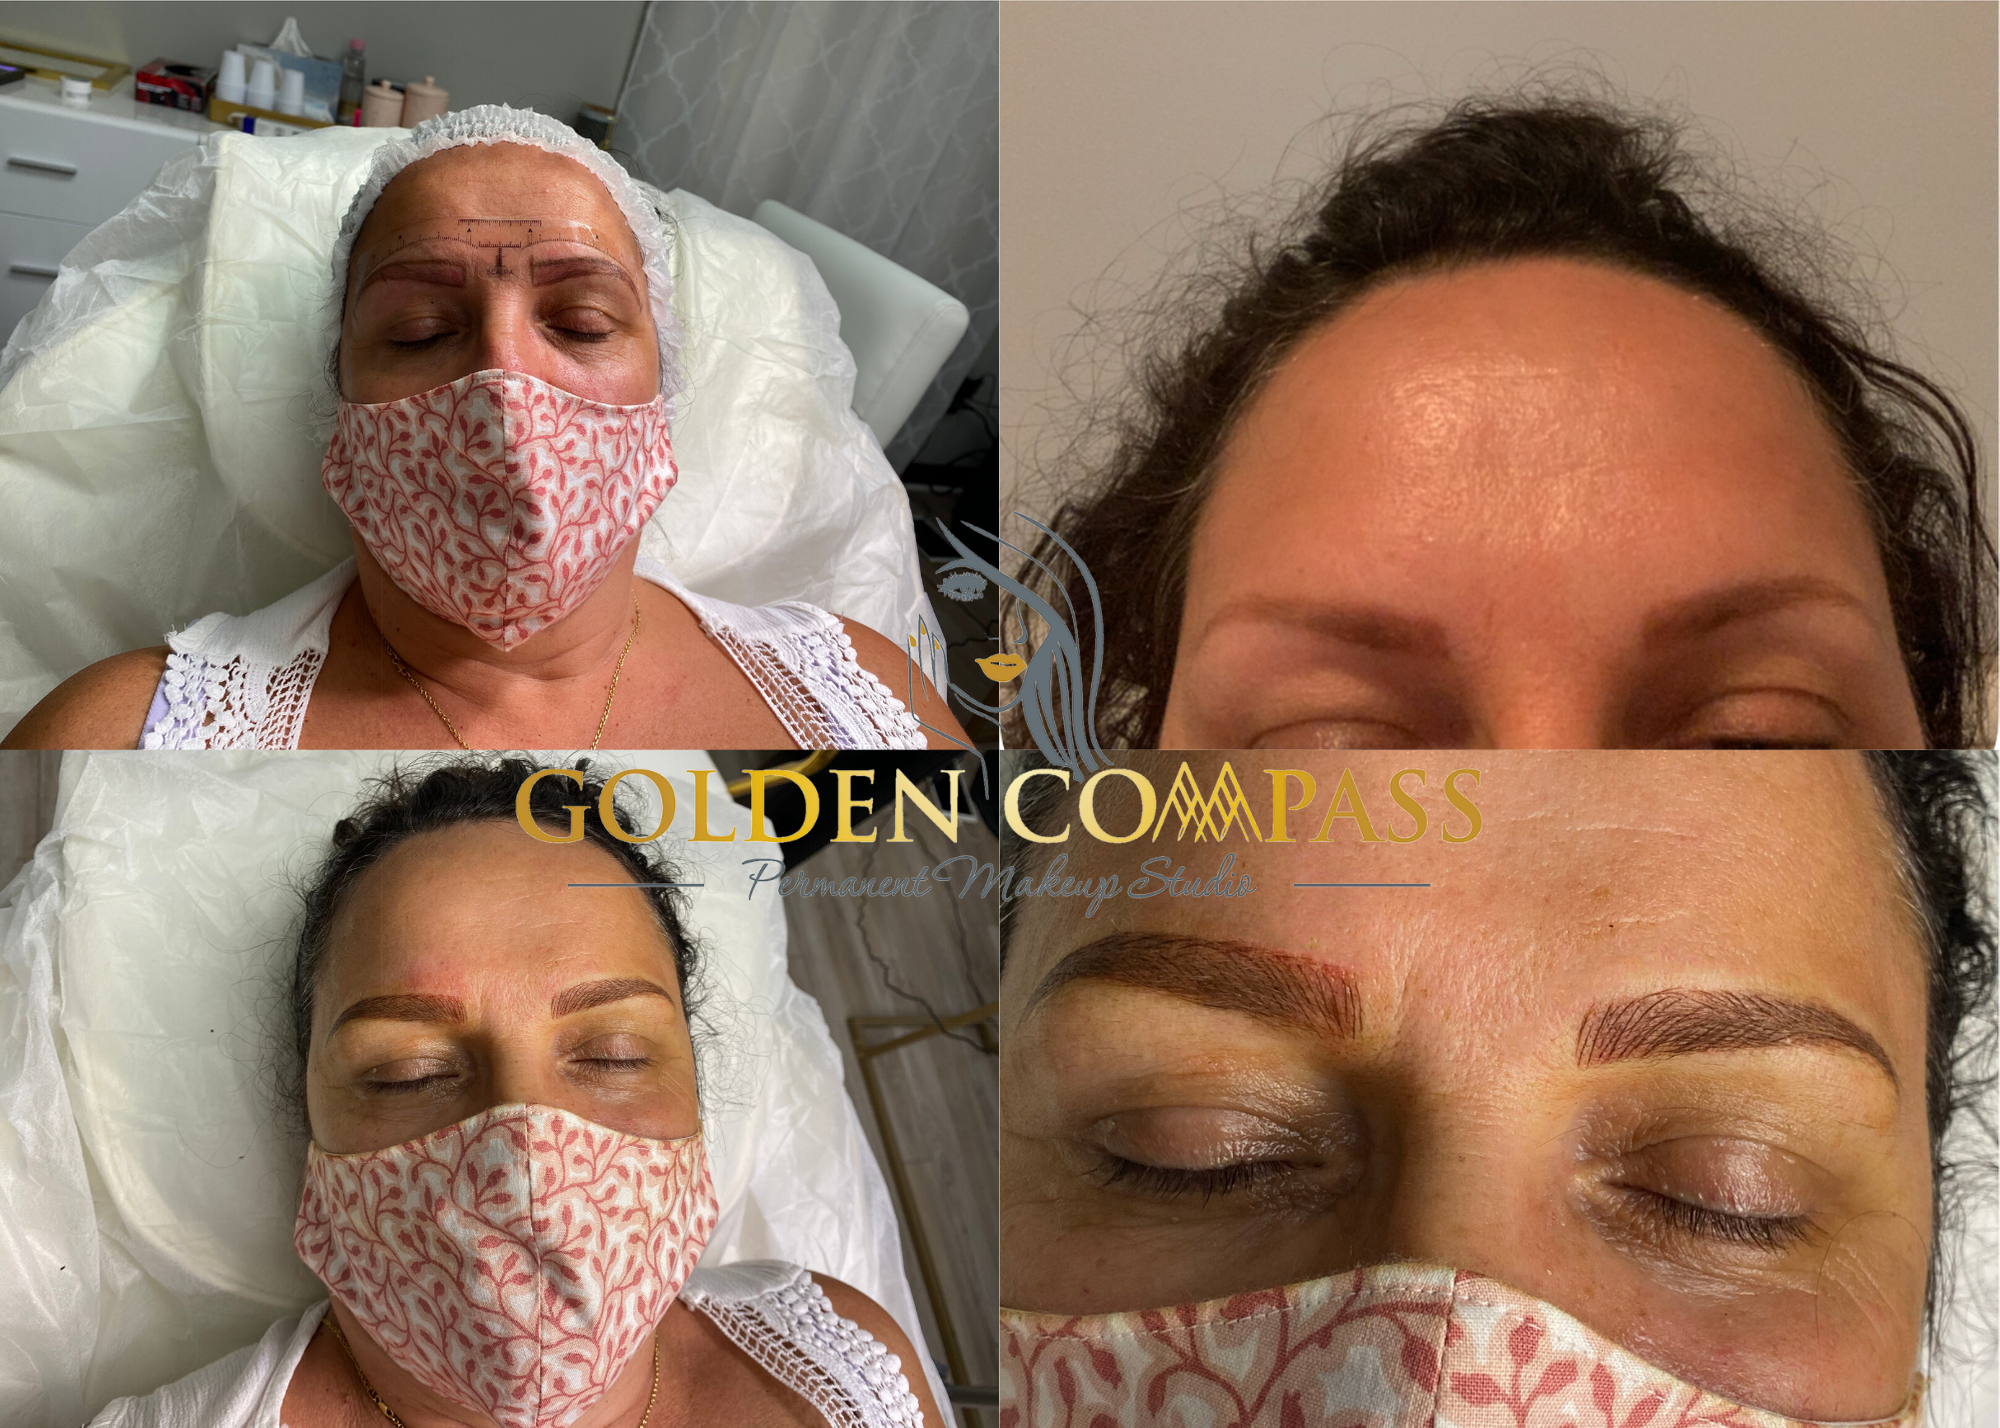 Golden Compass Permanent Makeup Studio